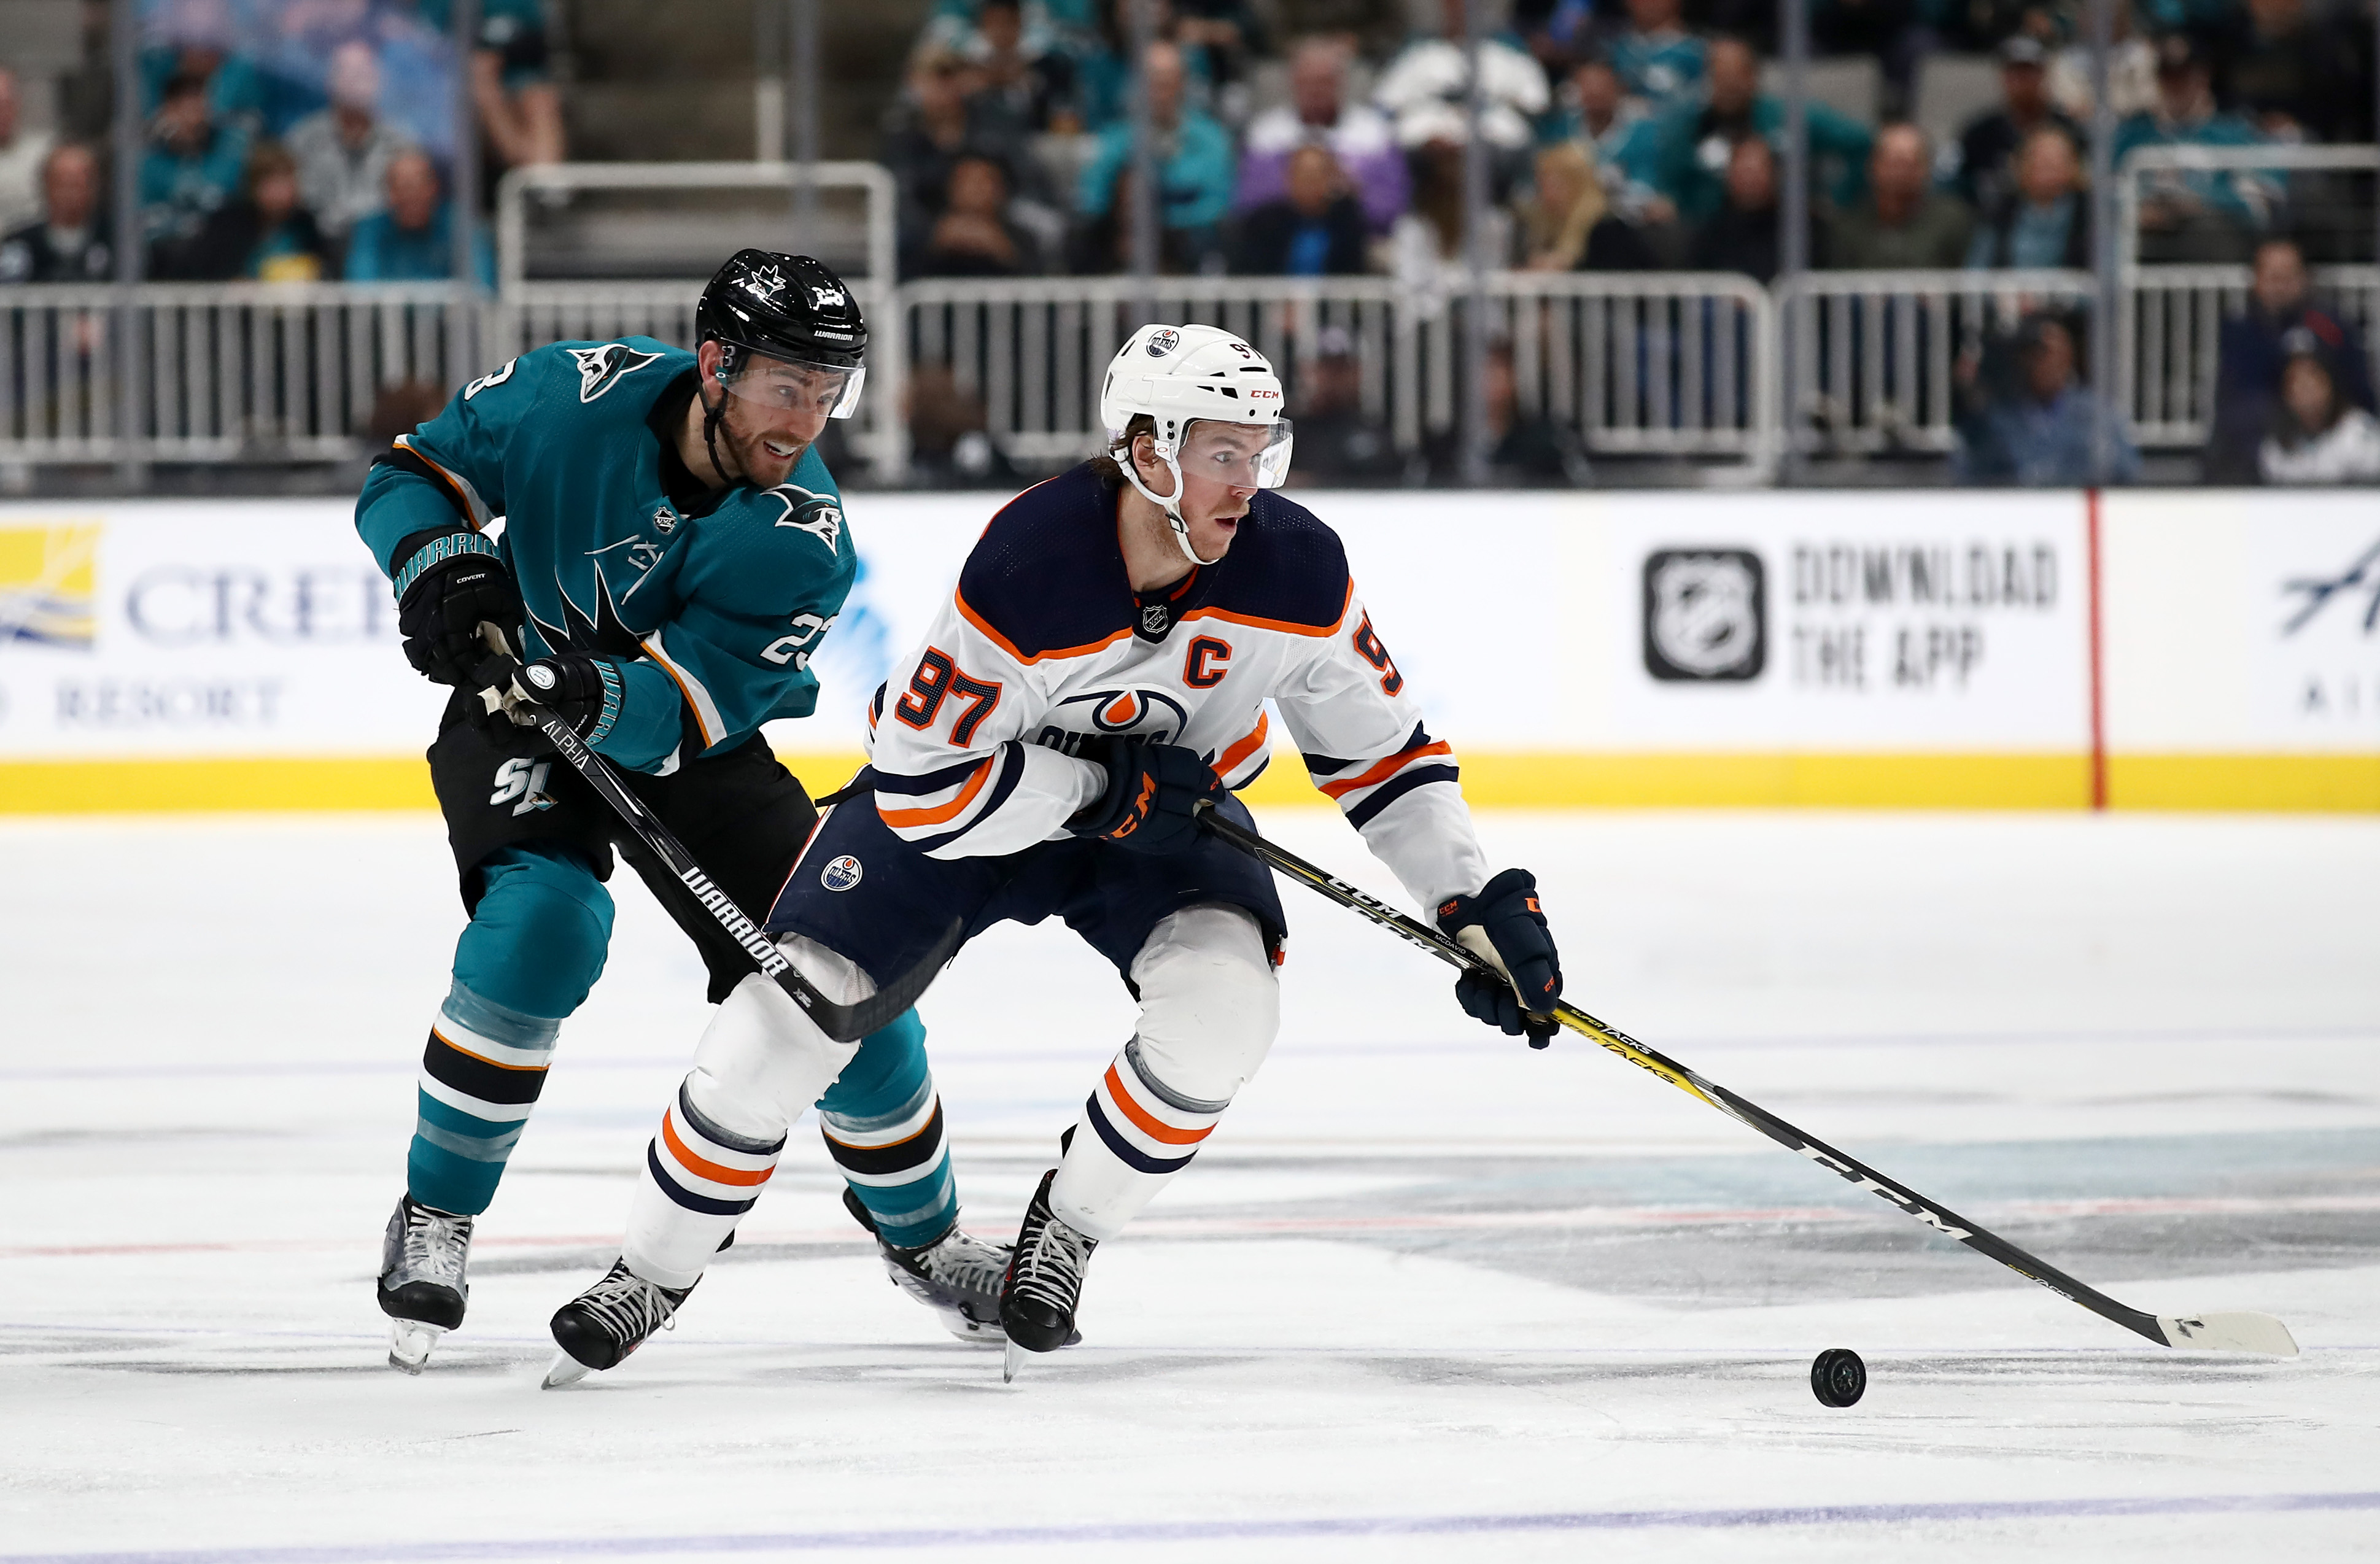 Connor McDavid #97 of the Edmonton Oilers tries to skate away from Barclay Goodrow #23 of the San Jose Sharks at SAP Center on November 12, 2019 in San Jose, California.